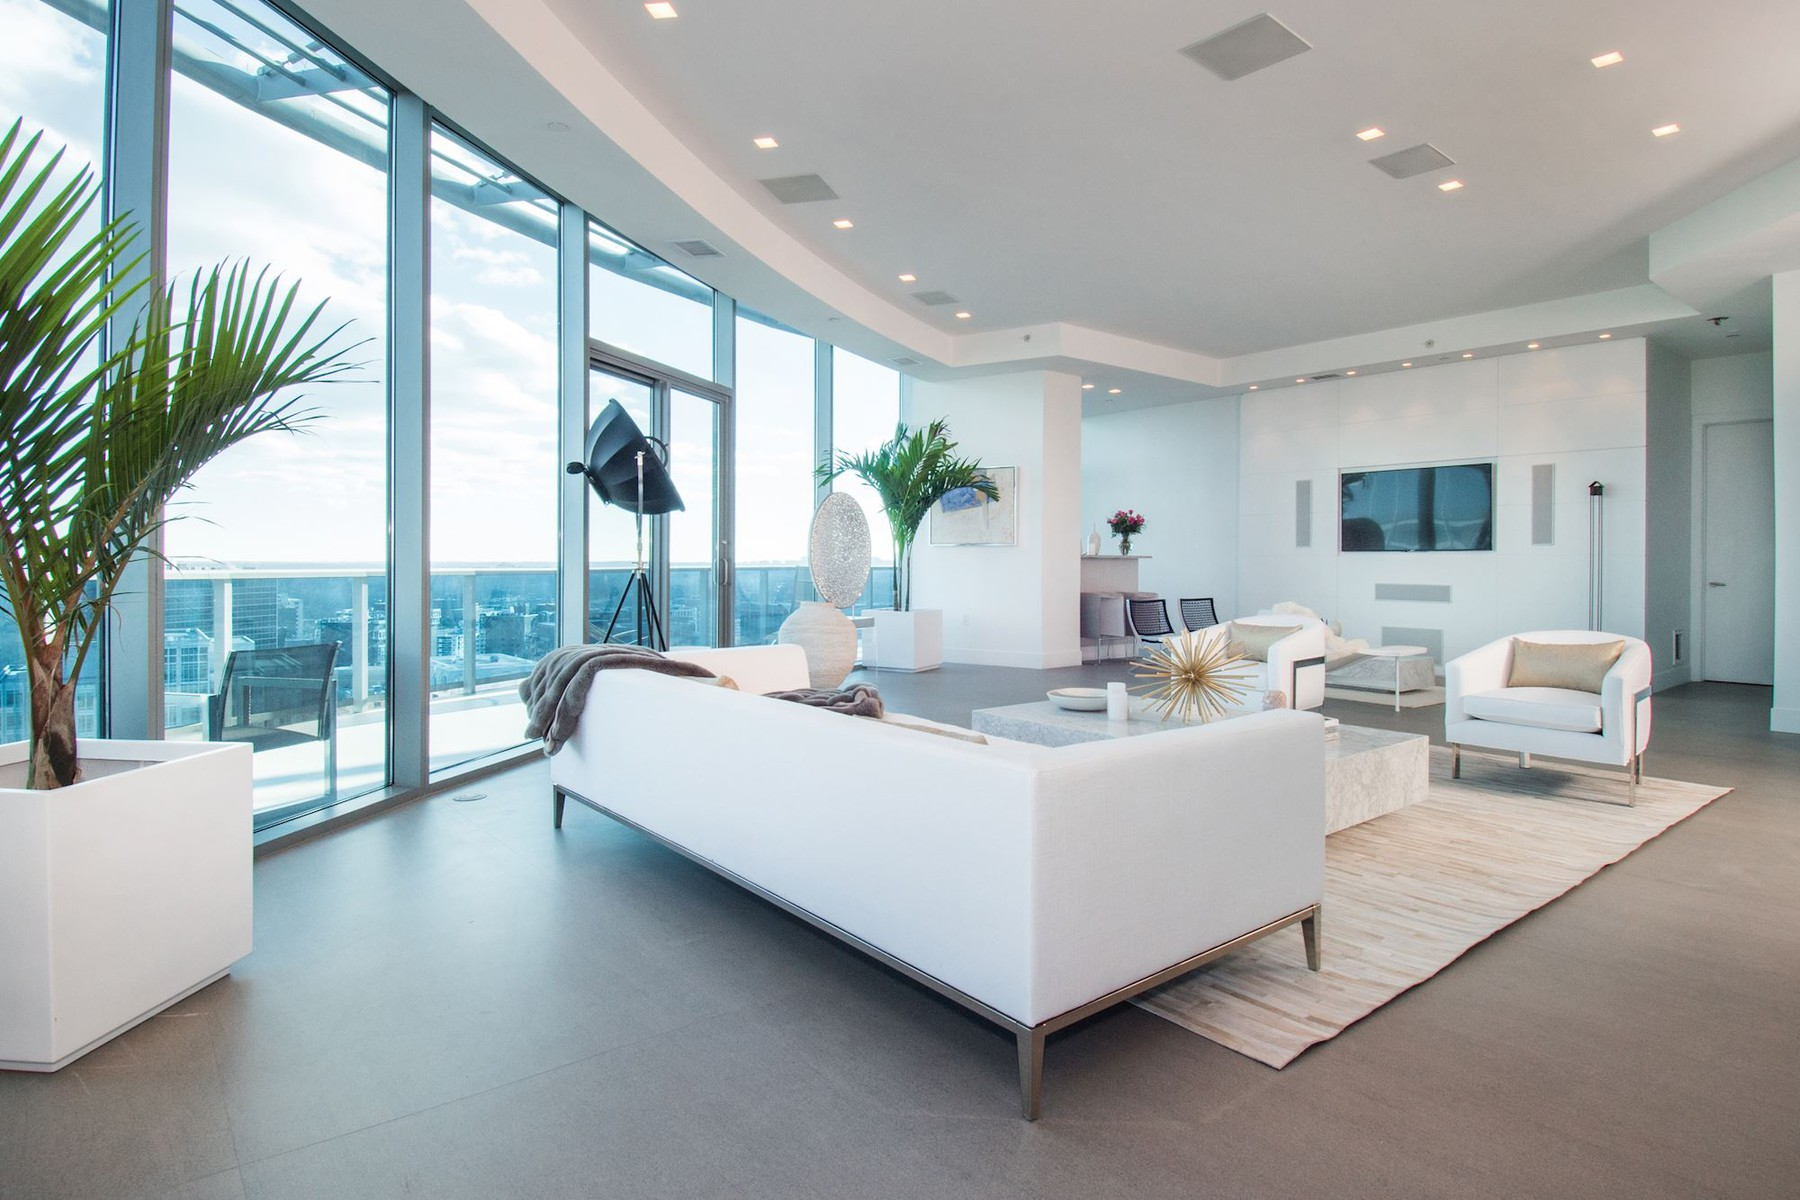 Additional photo for property listing at Turnberry Tower #TS01 1881 Nash Street N TS01 Arlington, Virginia 22209 United States